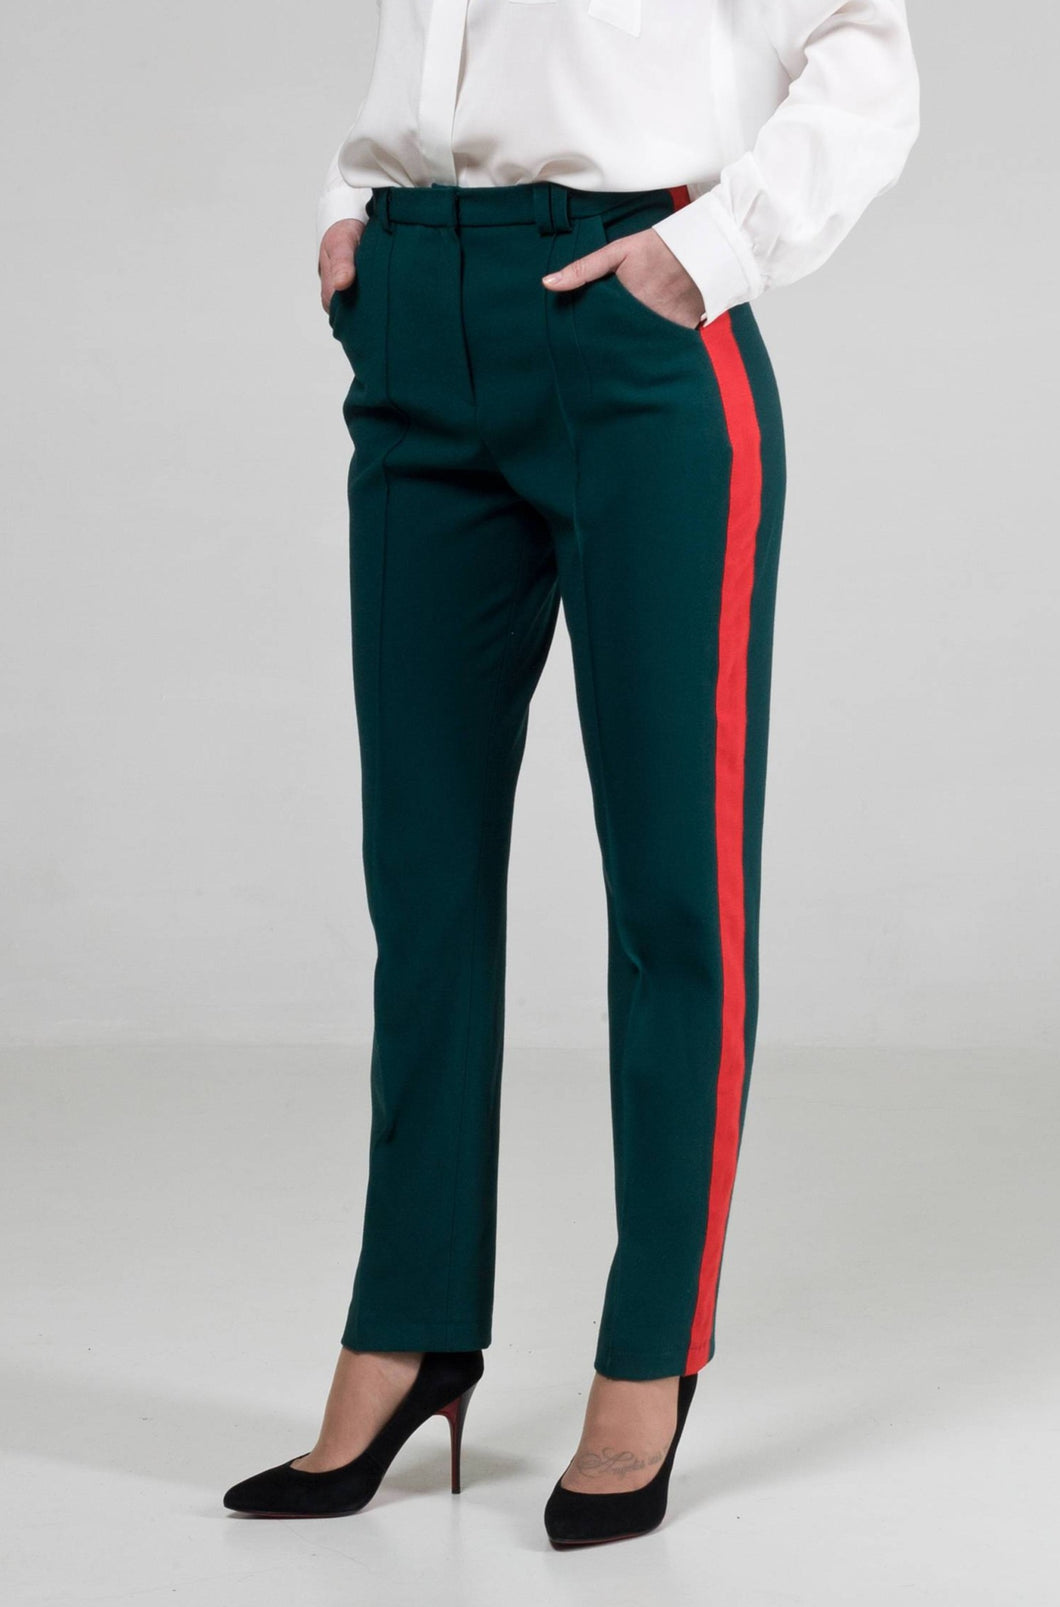 High waisted red stripe pants women